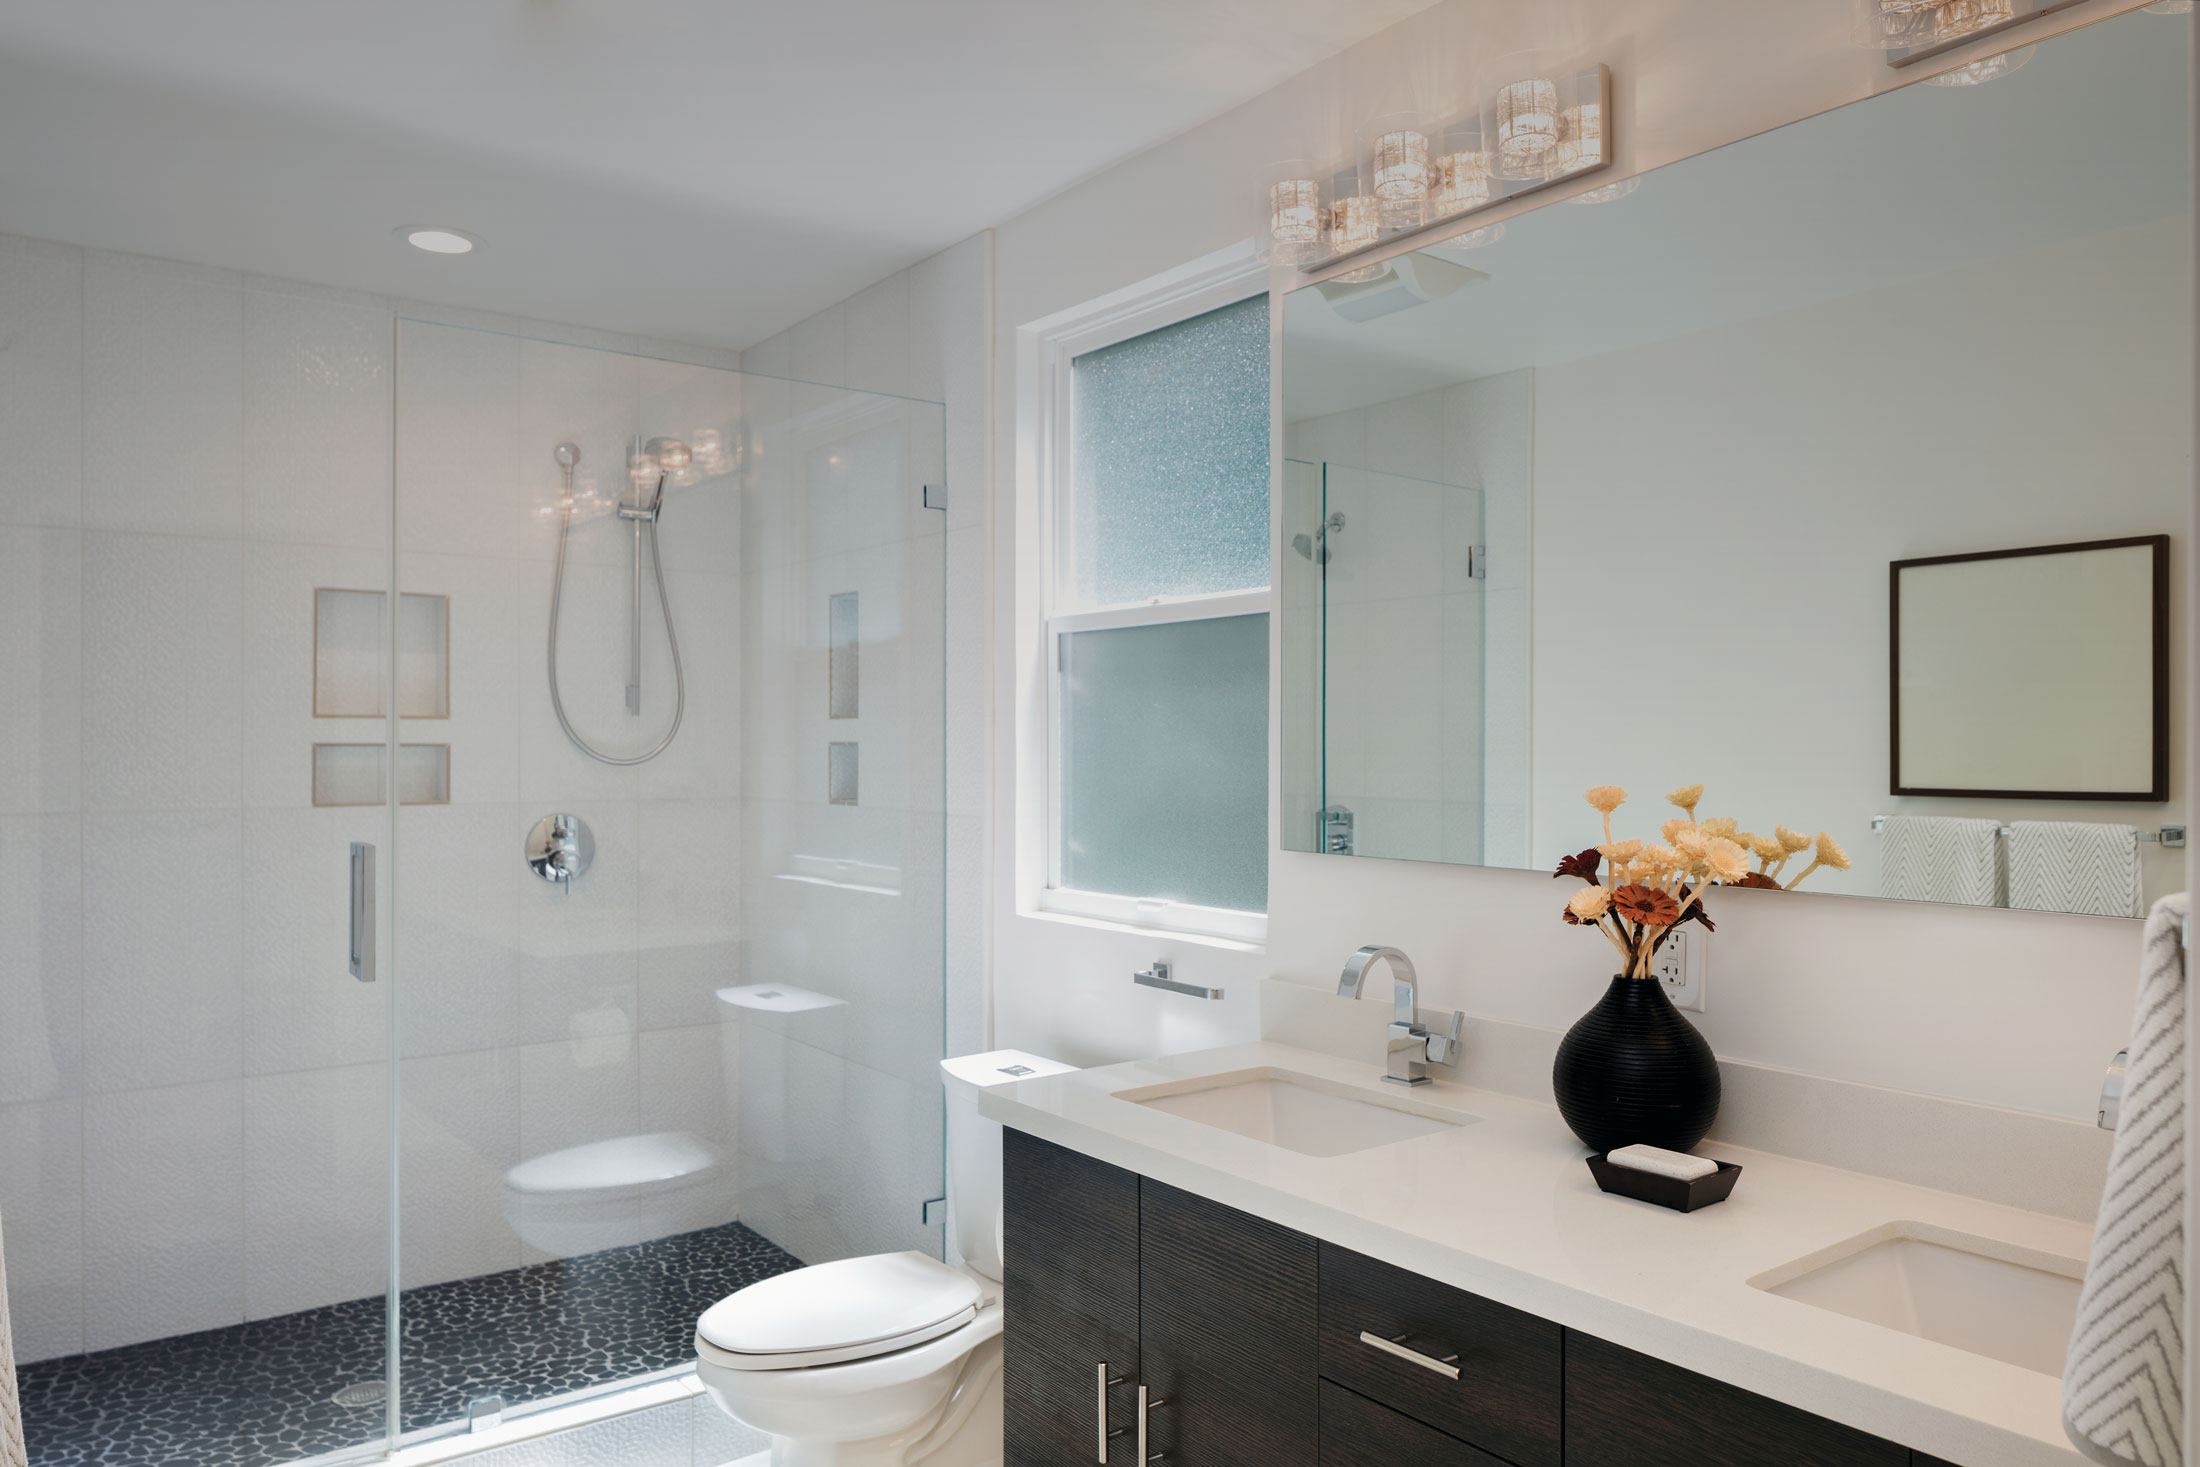 Bathroom Mirror and enclosure